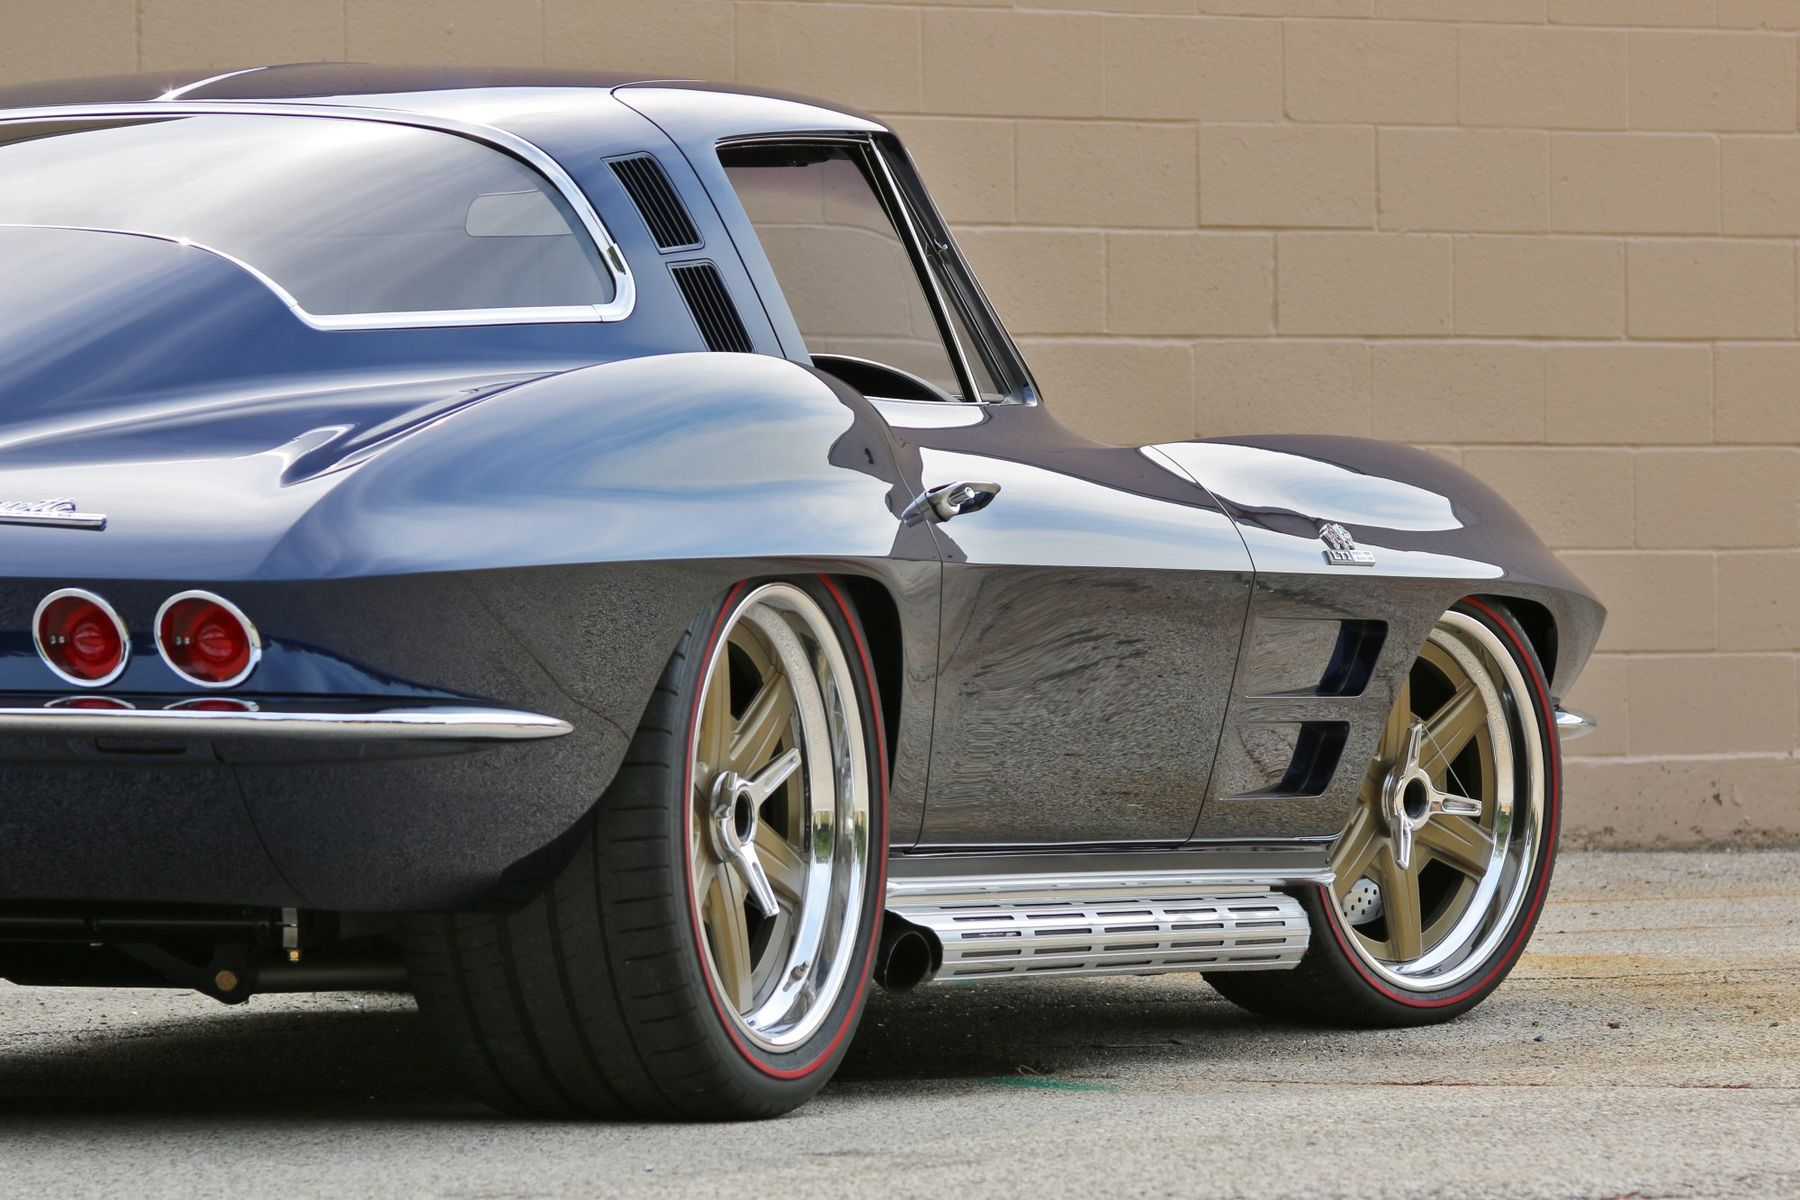 1964 Chevrolet Corvette Stingray | Barry B's Roadster Shop '64 Corvette Stingray on Center Locking Forgeline RS6 Wheels